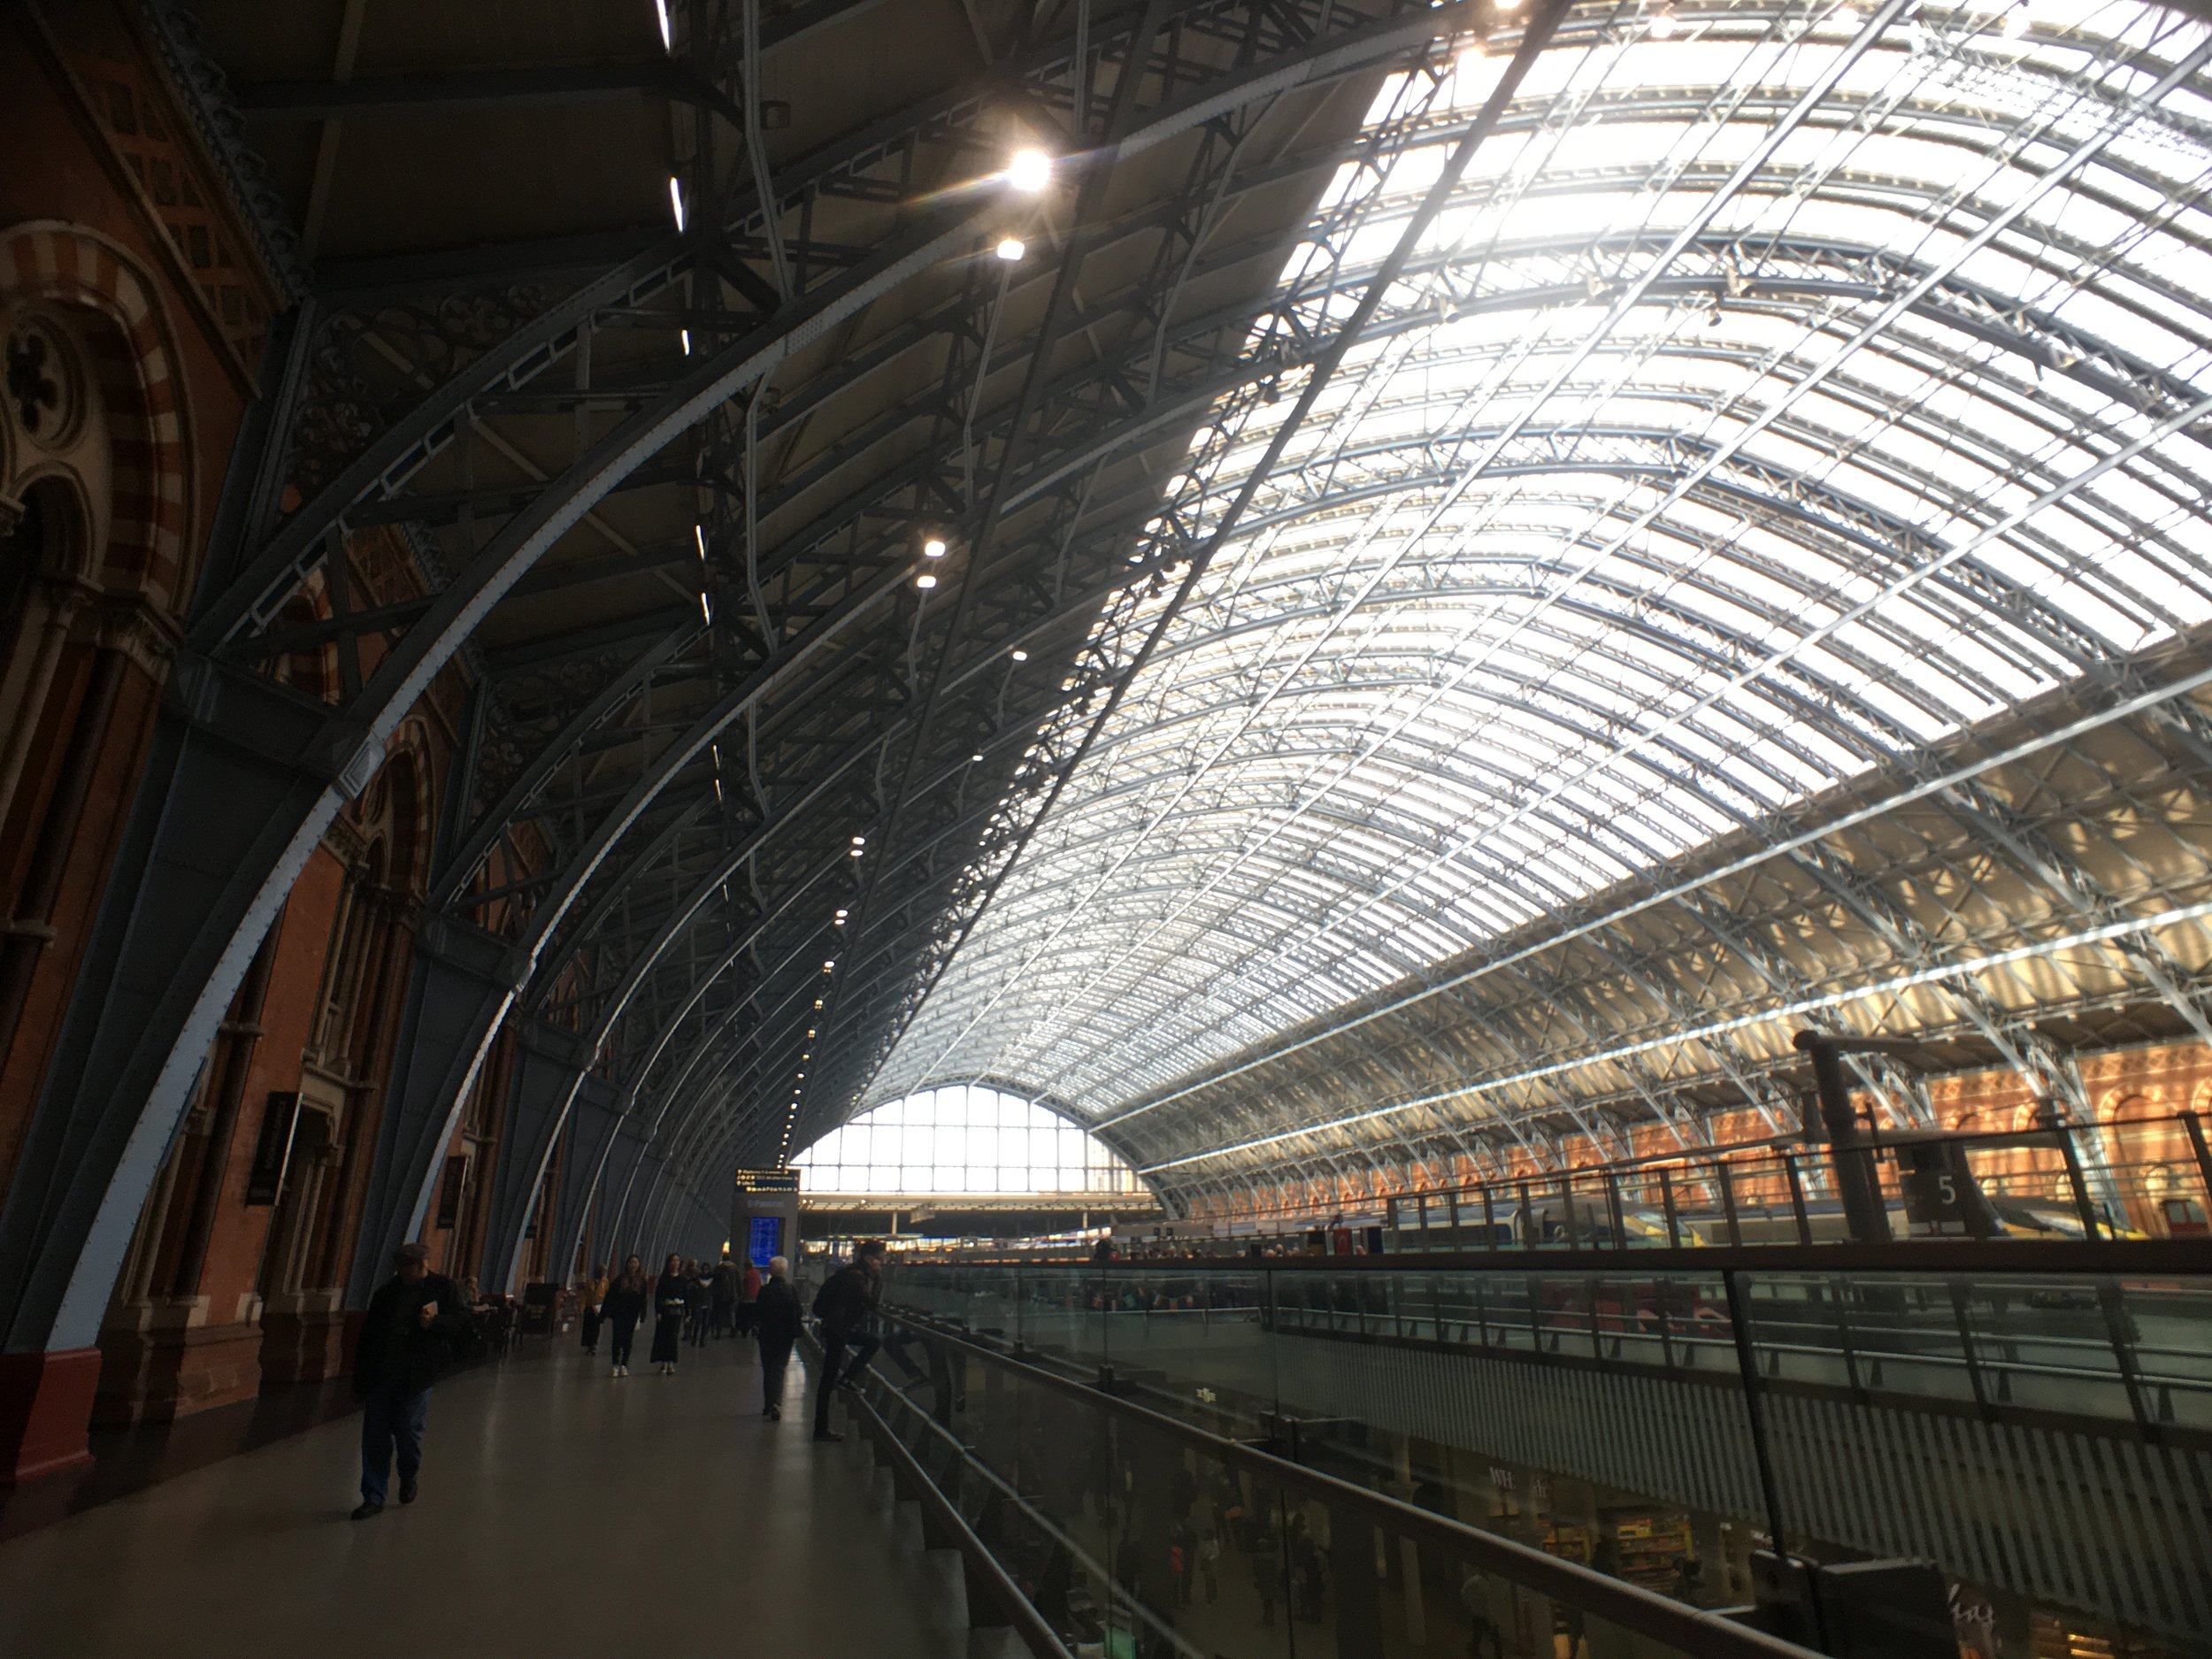 St. Pancras International Train Station.